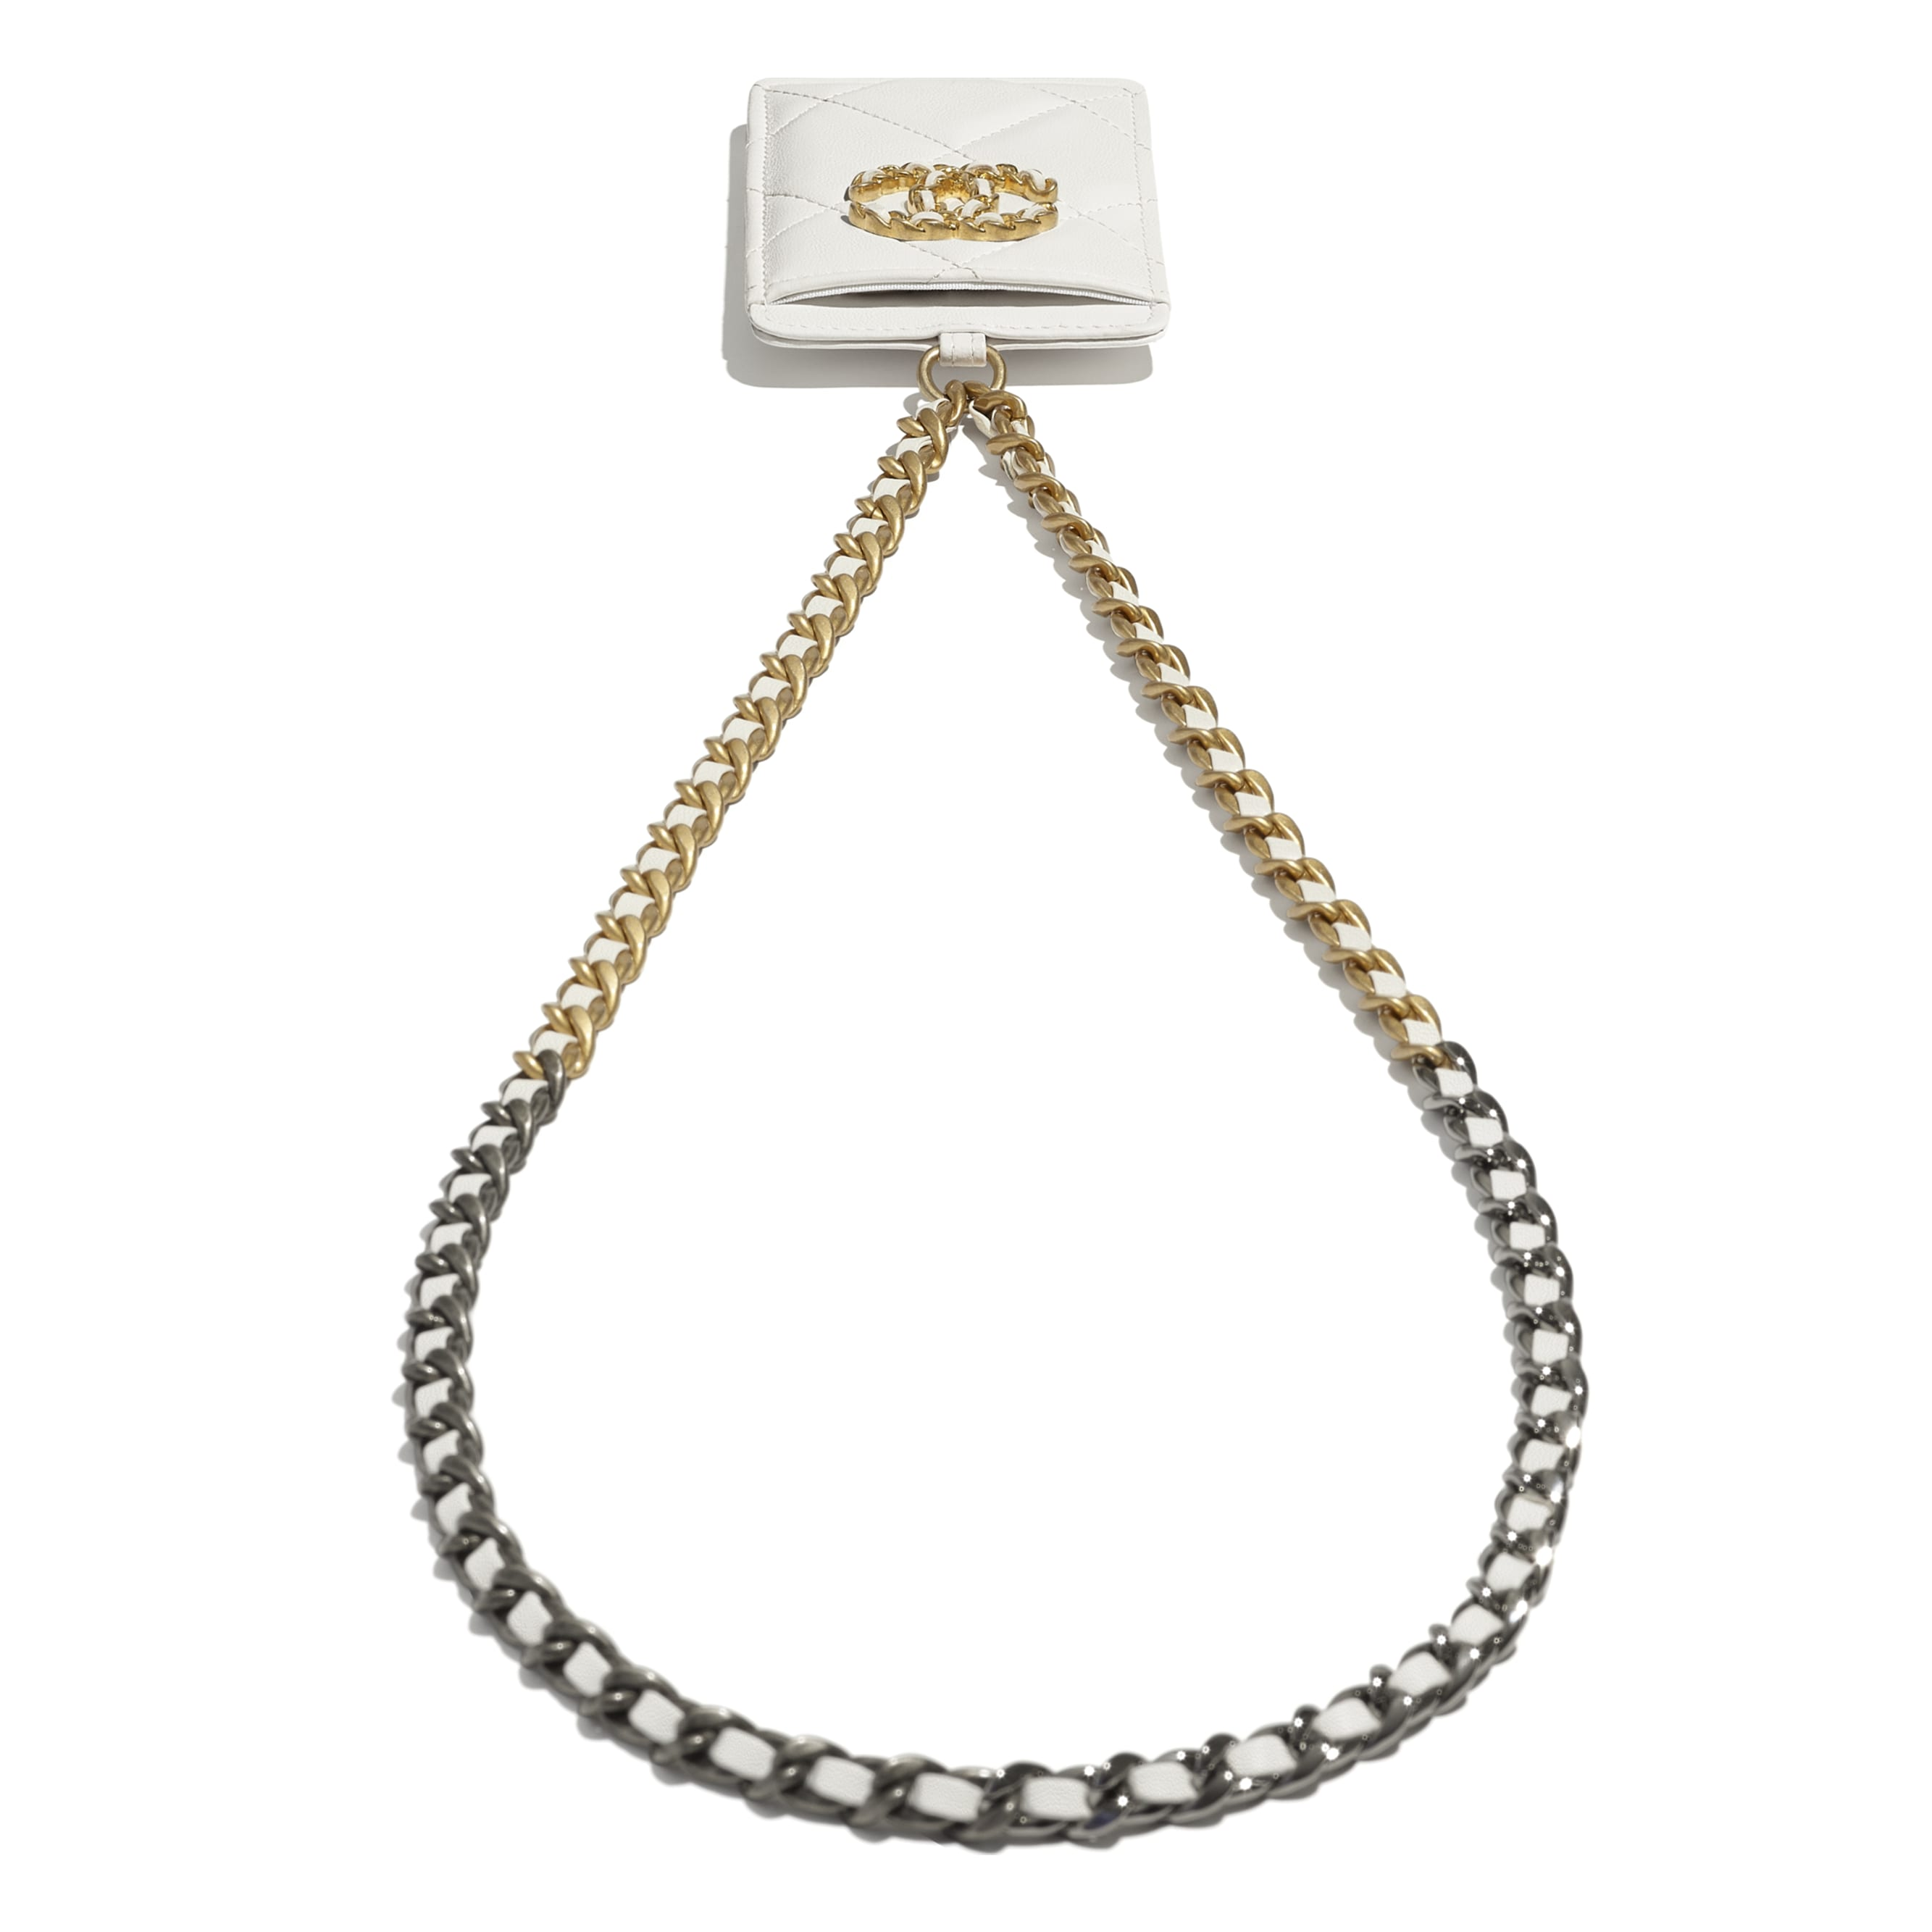 CHANEL 19 Badge Holder - White - Lambskin, Gold-Tone, Silver-Tone & Ruthenium-Finish Metal - CHANEL - Extra view - see standard sized version